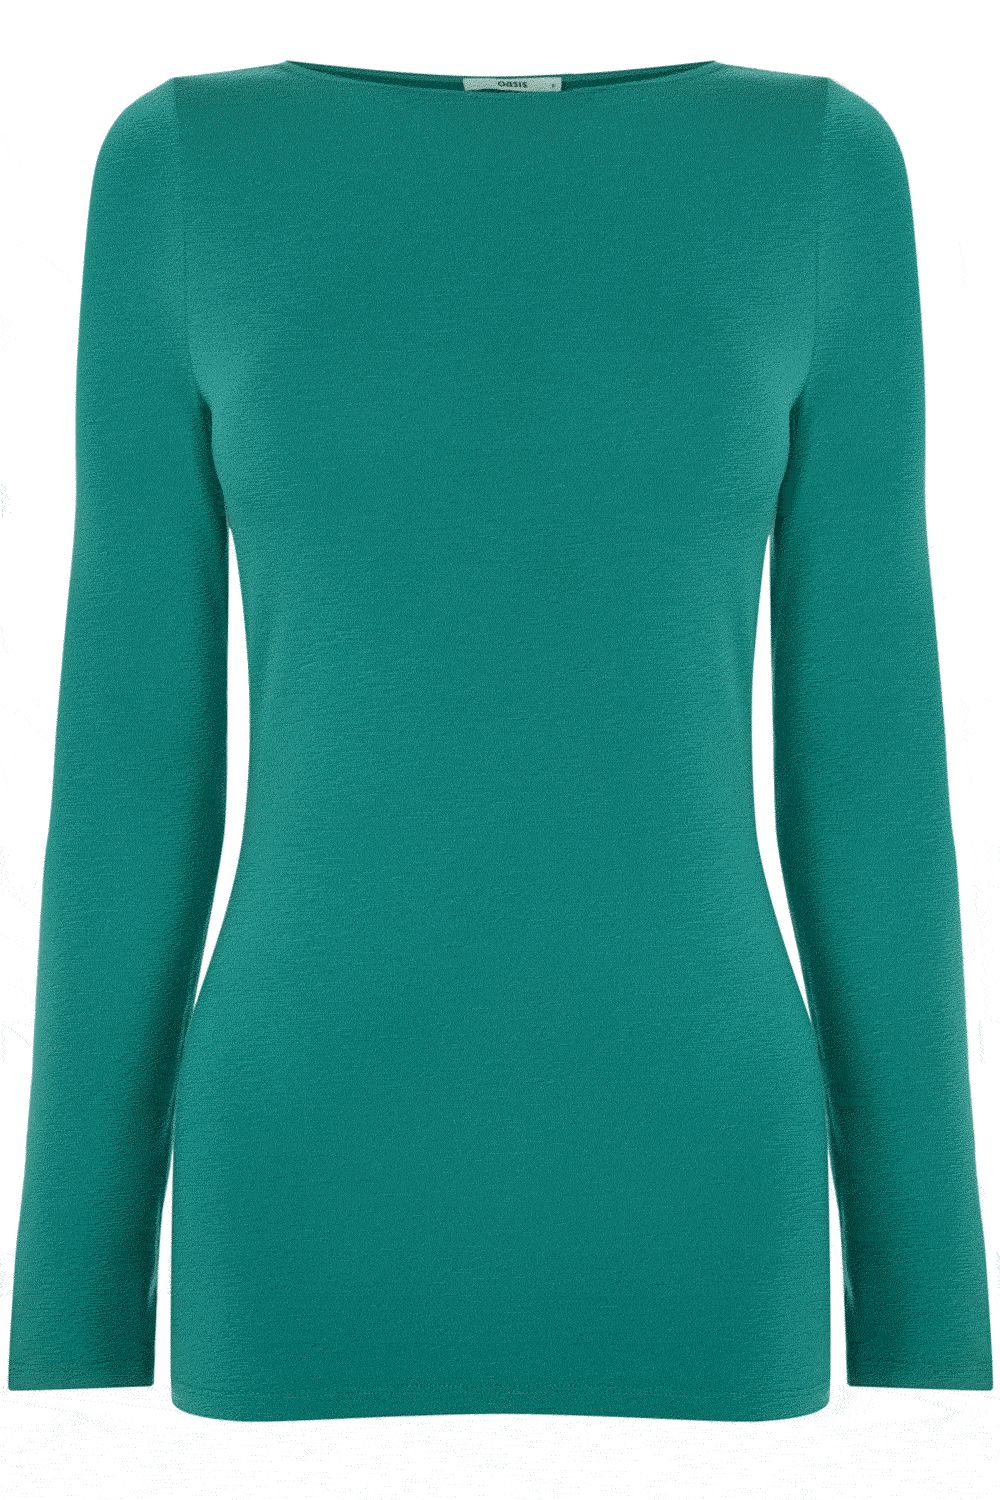 Curve neck long sleeve T-shirt